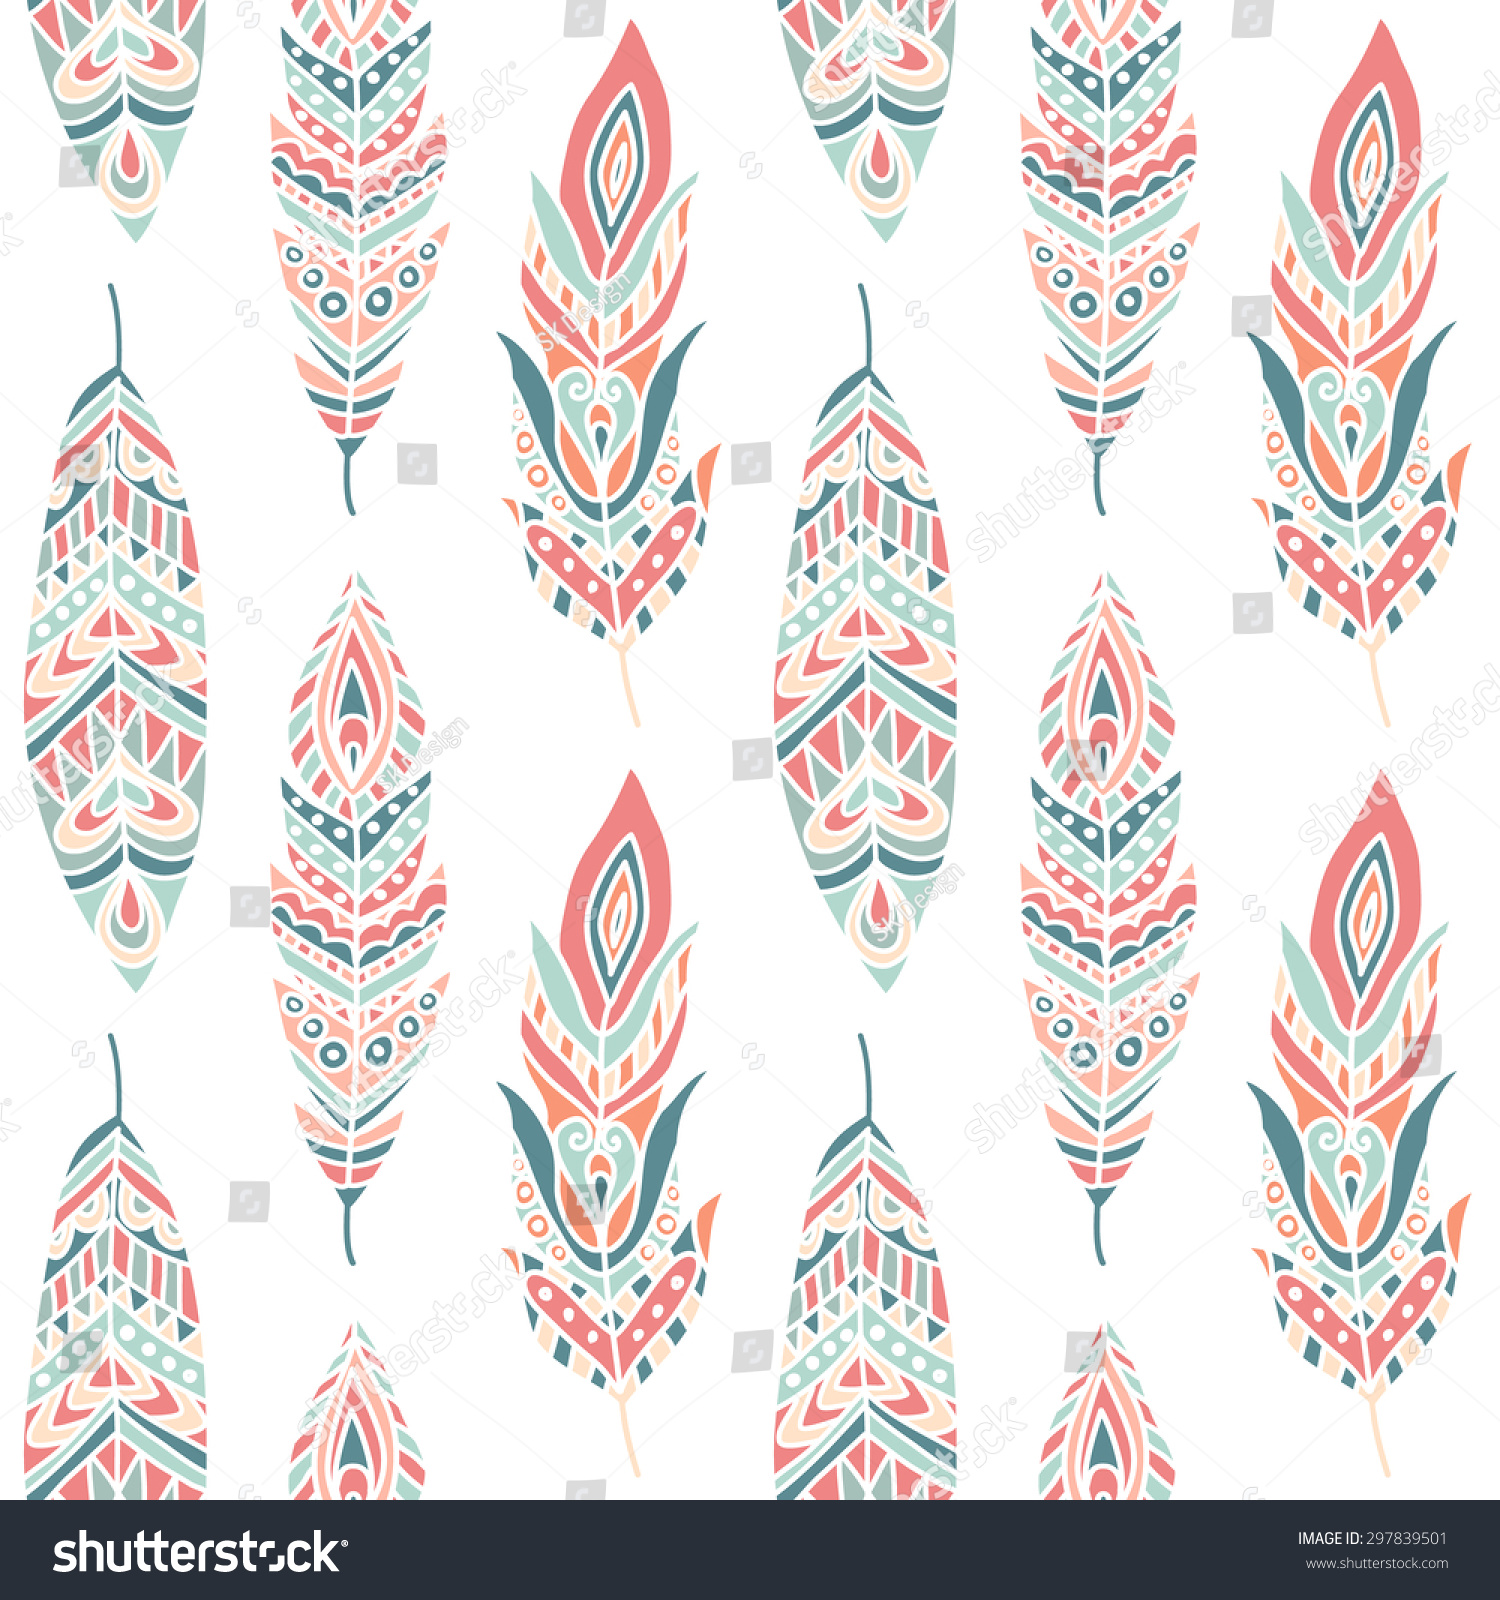 Seamless Pattern With Ethnic Feathers Hand Drawn Vector Illustration Can Be Used For Wallpaper